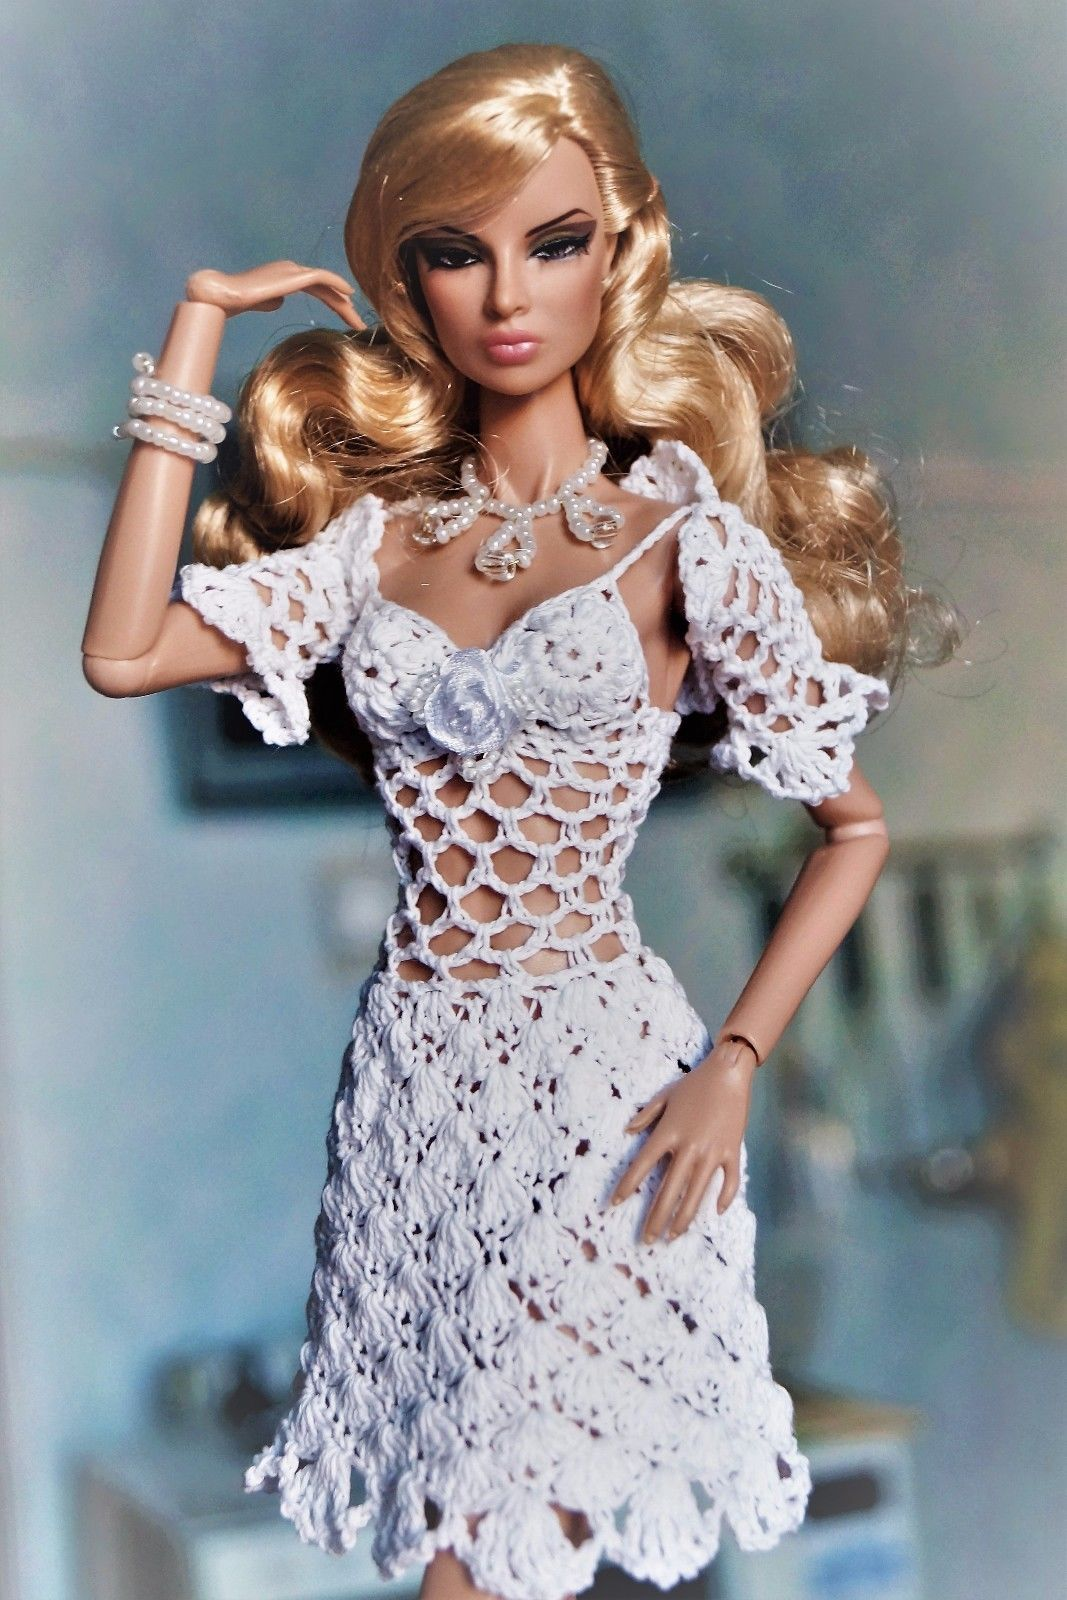 Outfit dress and bolero clothes for fashion royalty poppy parker outfit dress and bolero clothes for fashion royalty poppy parker barbie fr2 bankloansurffo Choice Image